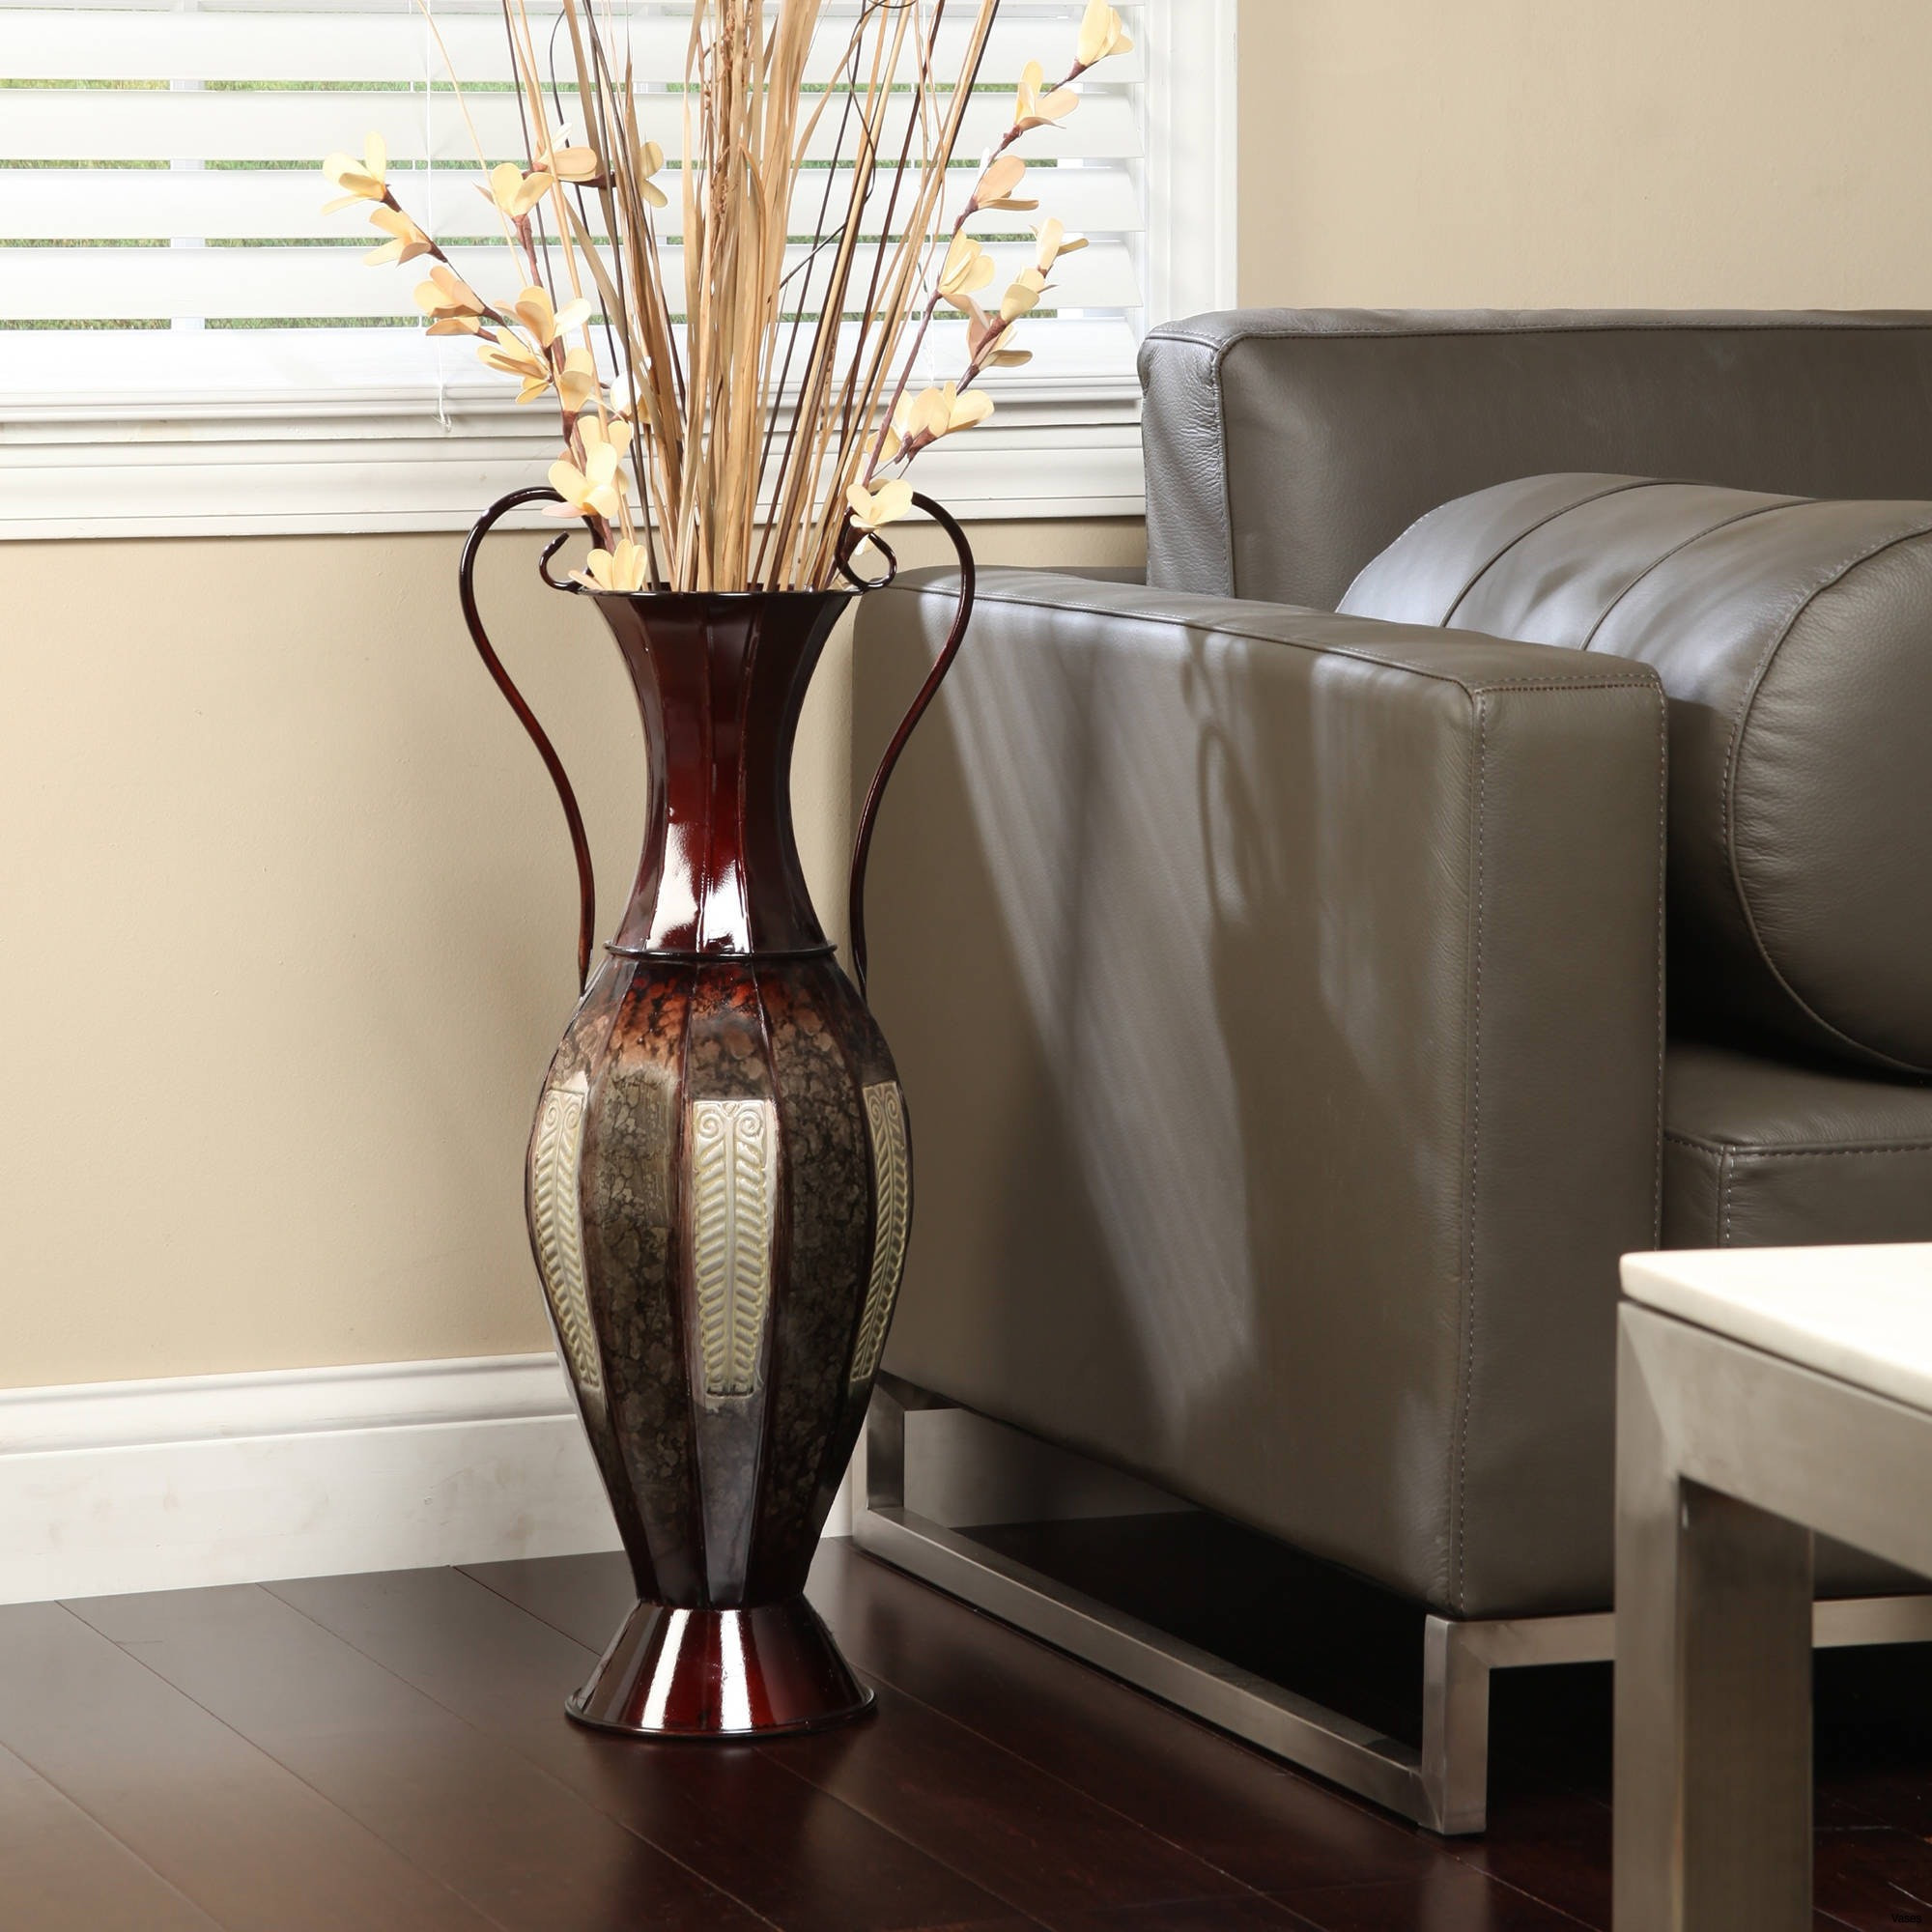 large terracotta floor vases of large floor vases pictures floor vases with flowers vase and cellar with regard to large floor vases photos floor plans new 9 beautiful floor vases qosy for tall vaseh of